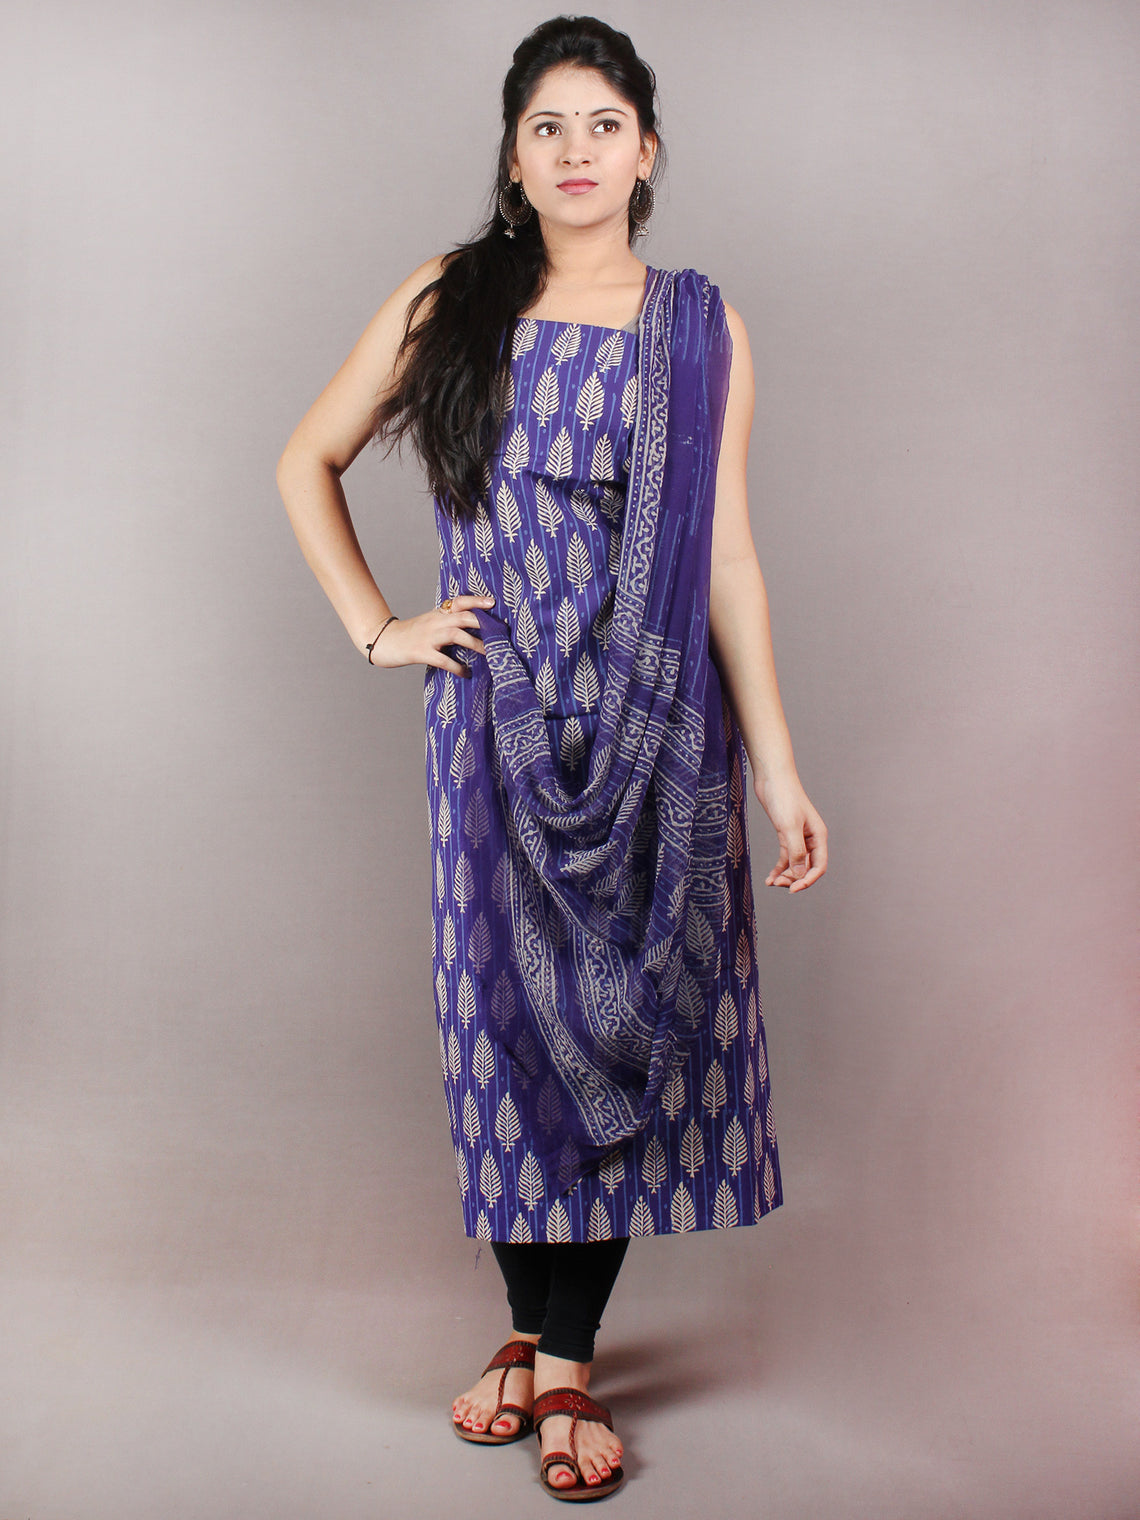 Indigo Beige Hand Block Printed Cotton Suit-Salwar Fabric With Chiffon Dupatta - S1628075